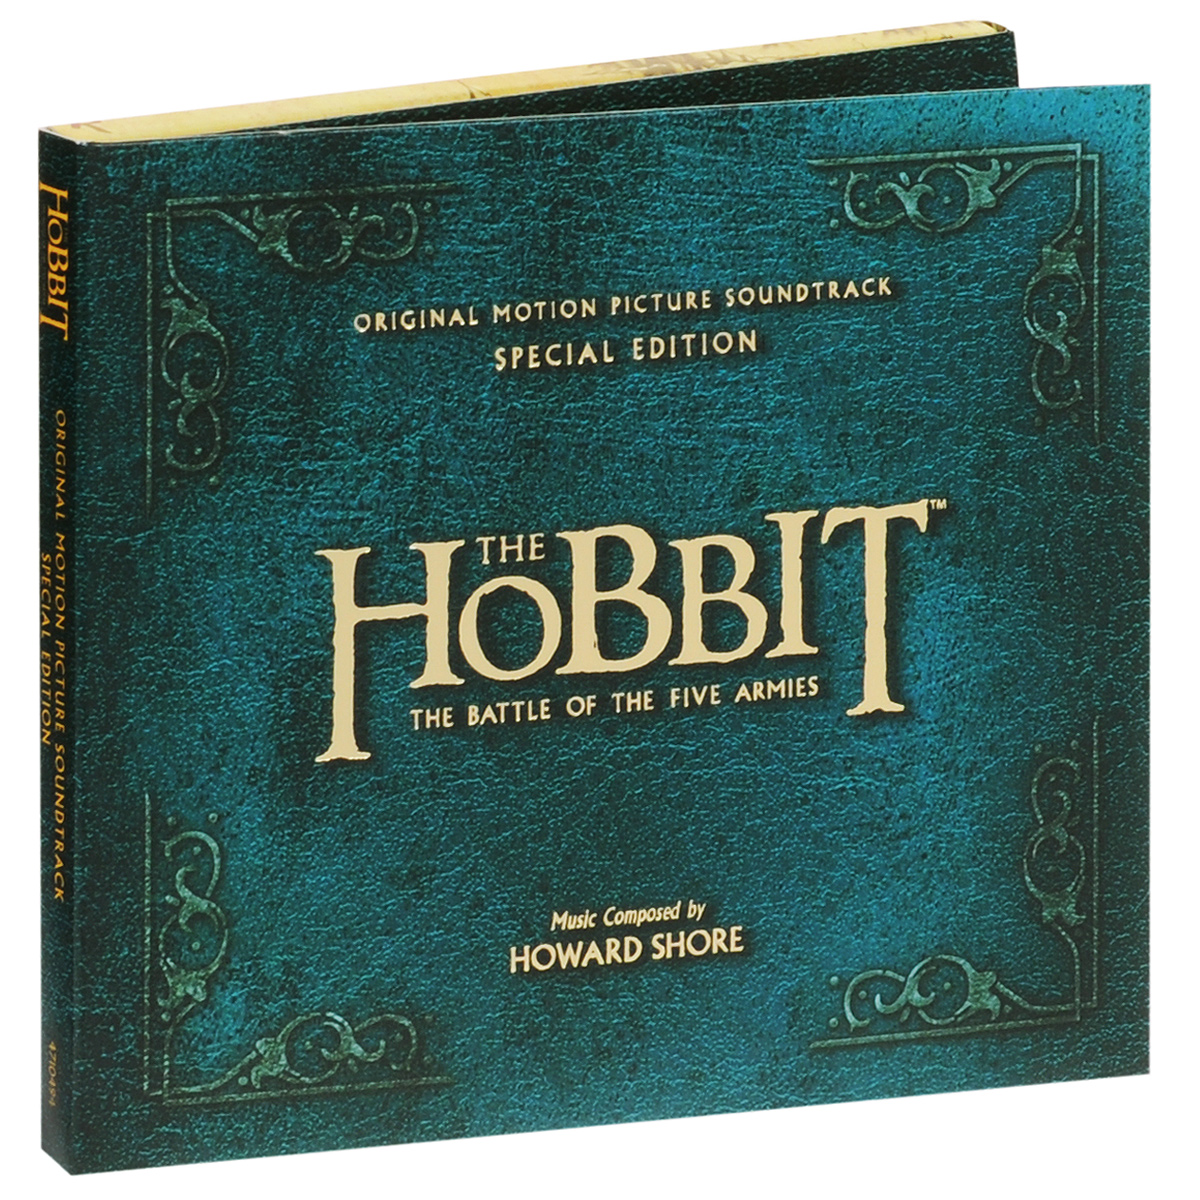 The Hobbit. The Battle Of The Five Armies. Original Montion Picture Soundtrack. Special Edition (2 CD) the hobbit the battle of the five armies chronicles the art of war